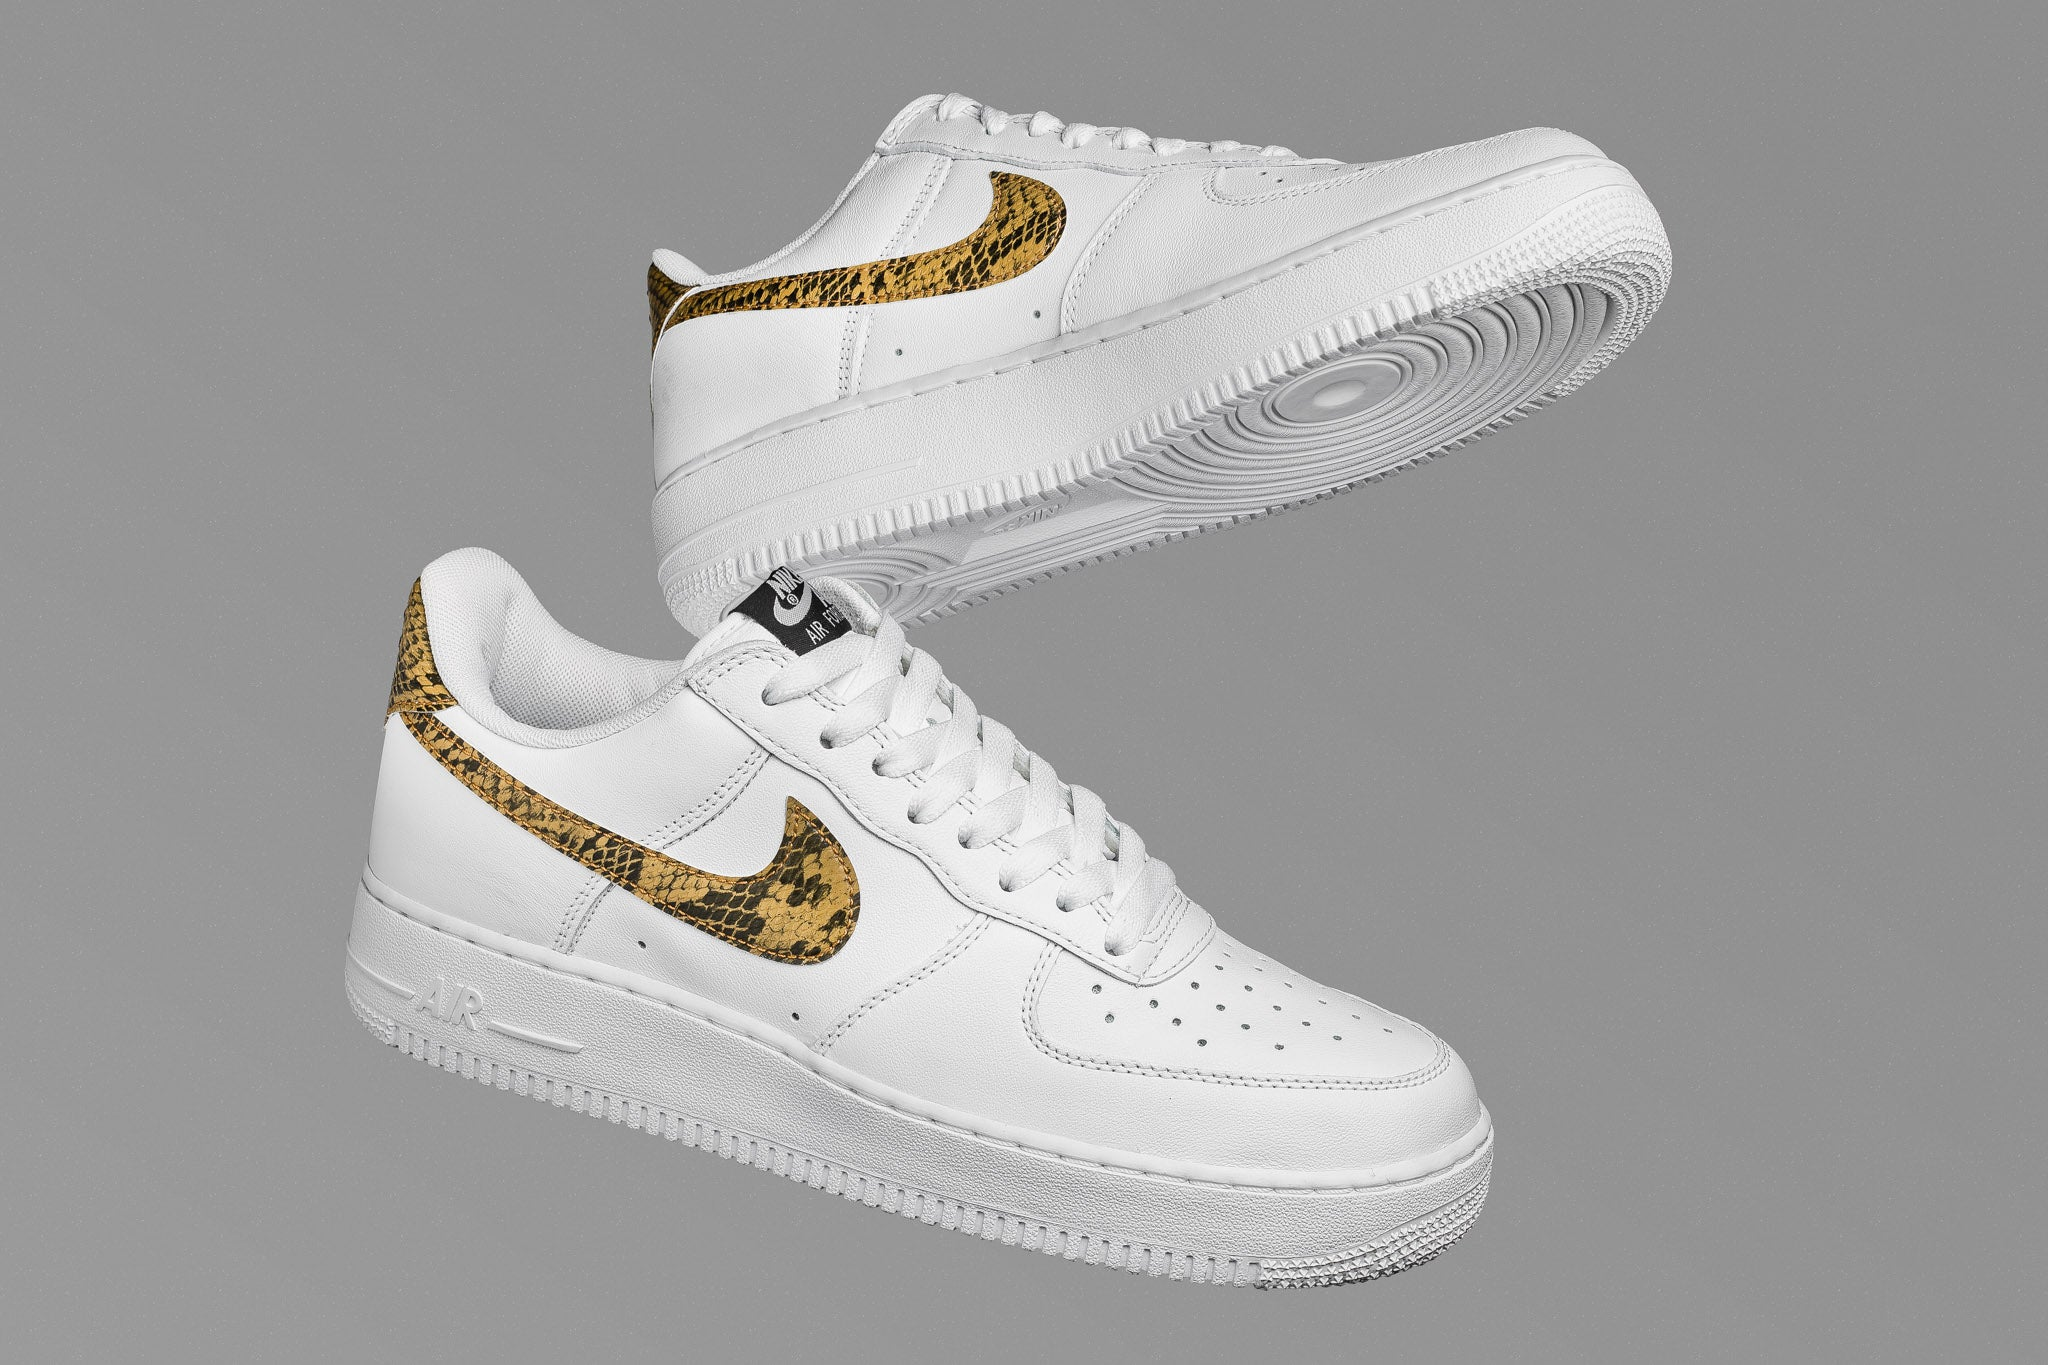 new arrival 921e2 5040c The Air Force 1 Retro PRM adds a luxe beige snakeskin swoosh over top the  premium leather uppers. Arriving in the low-top profile, the Air Force 1  Low Retro ...